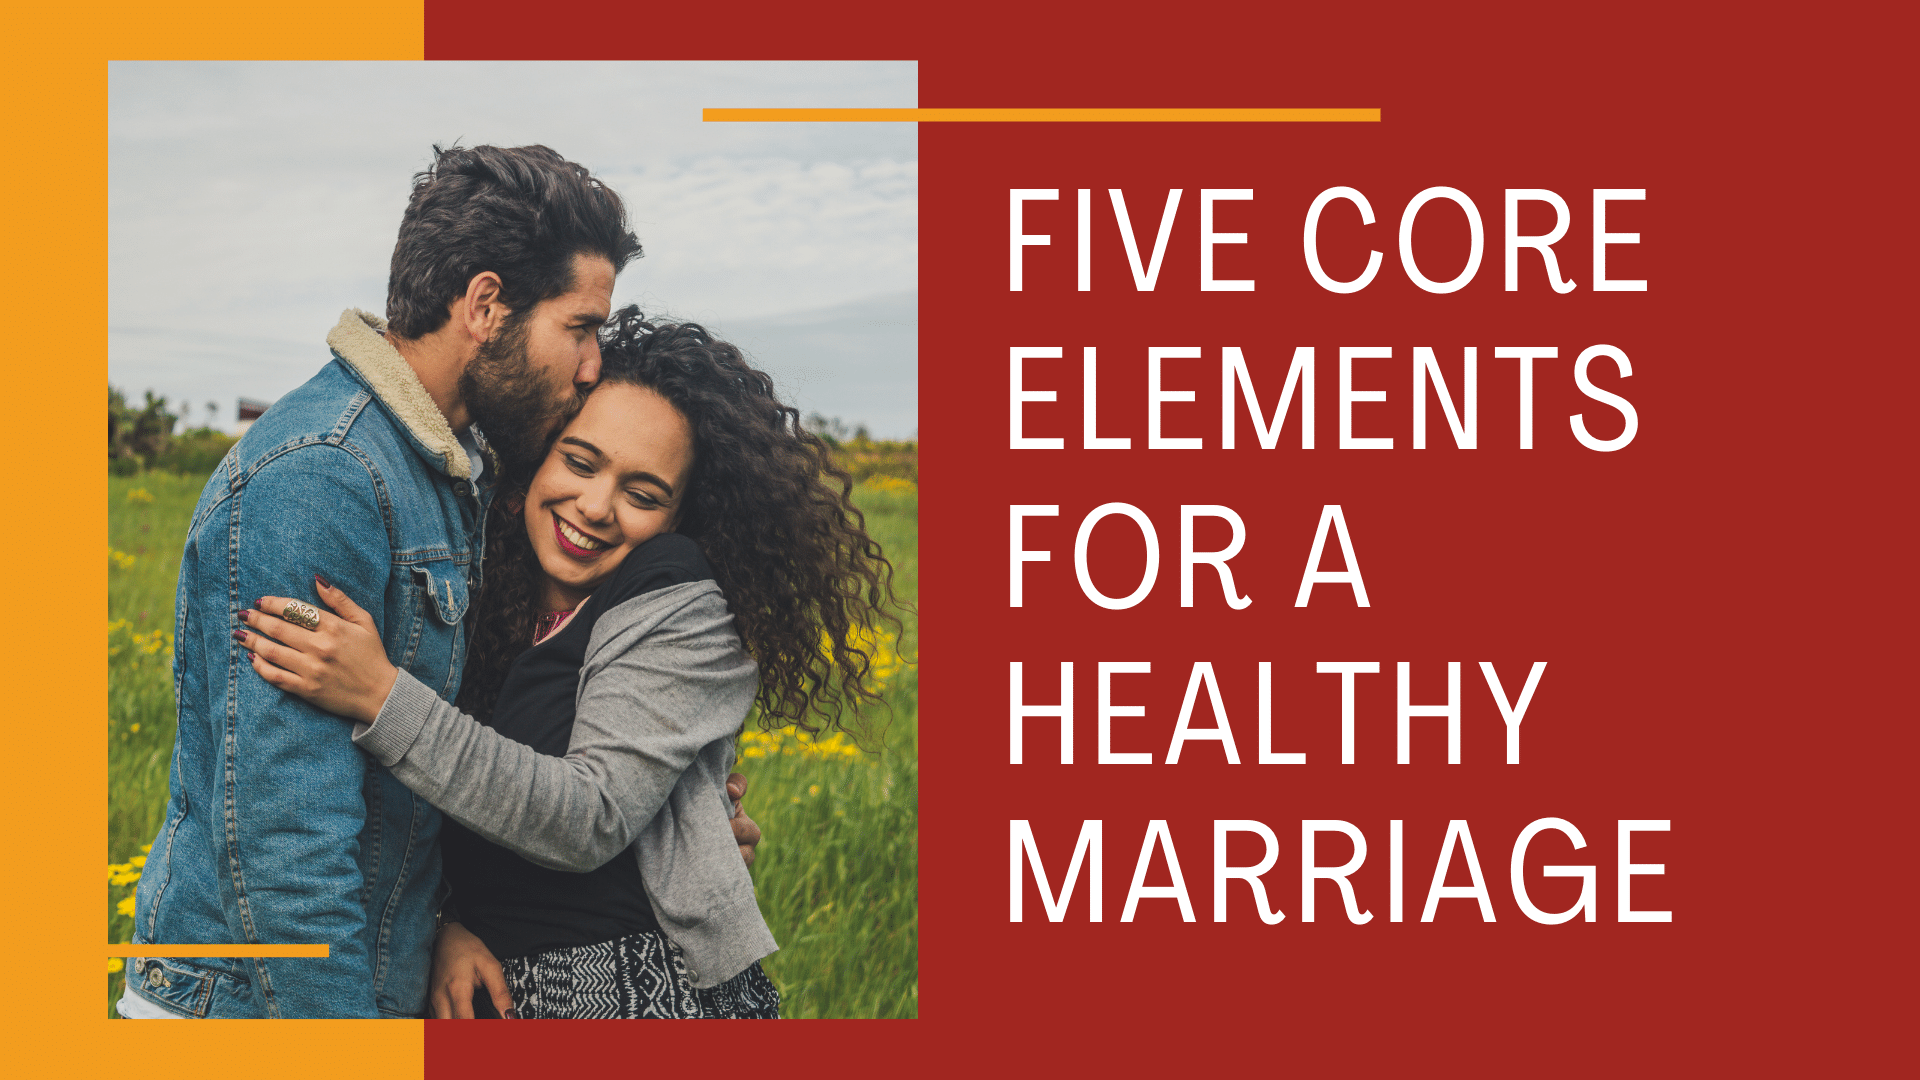 Five Core Elements for a Healthy Marriage